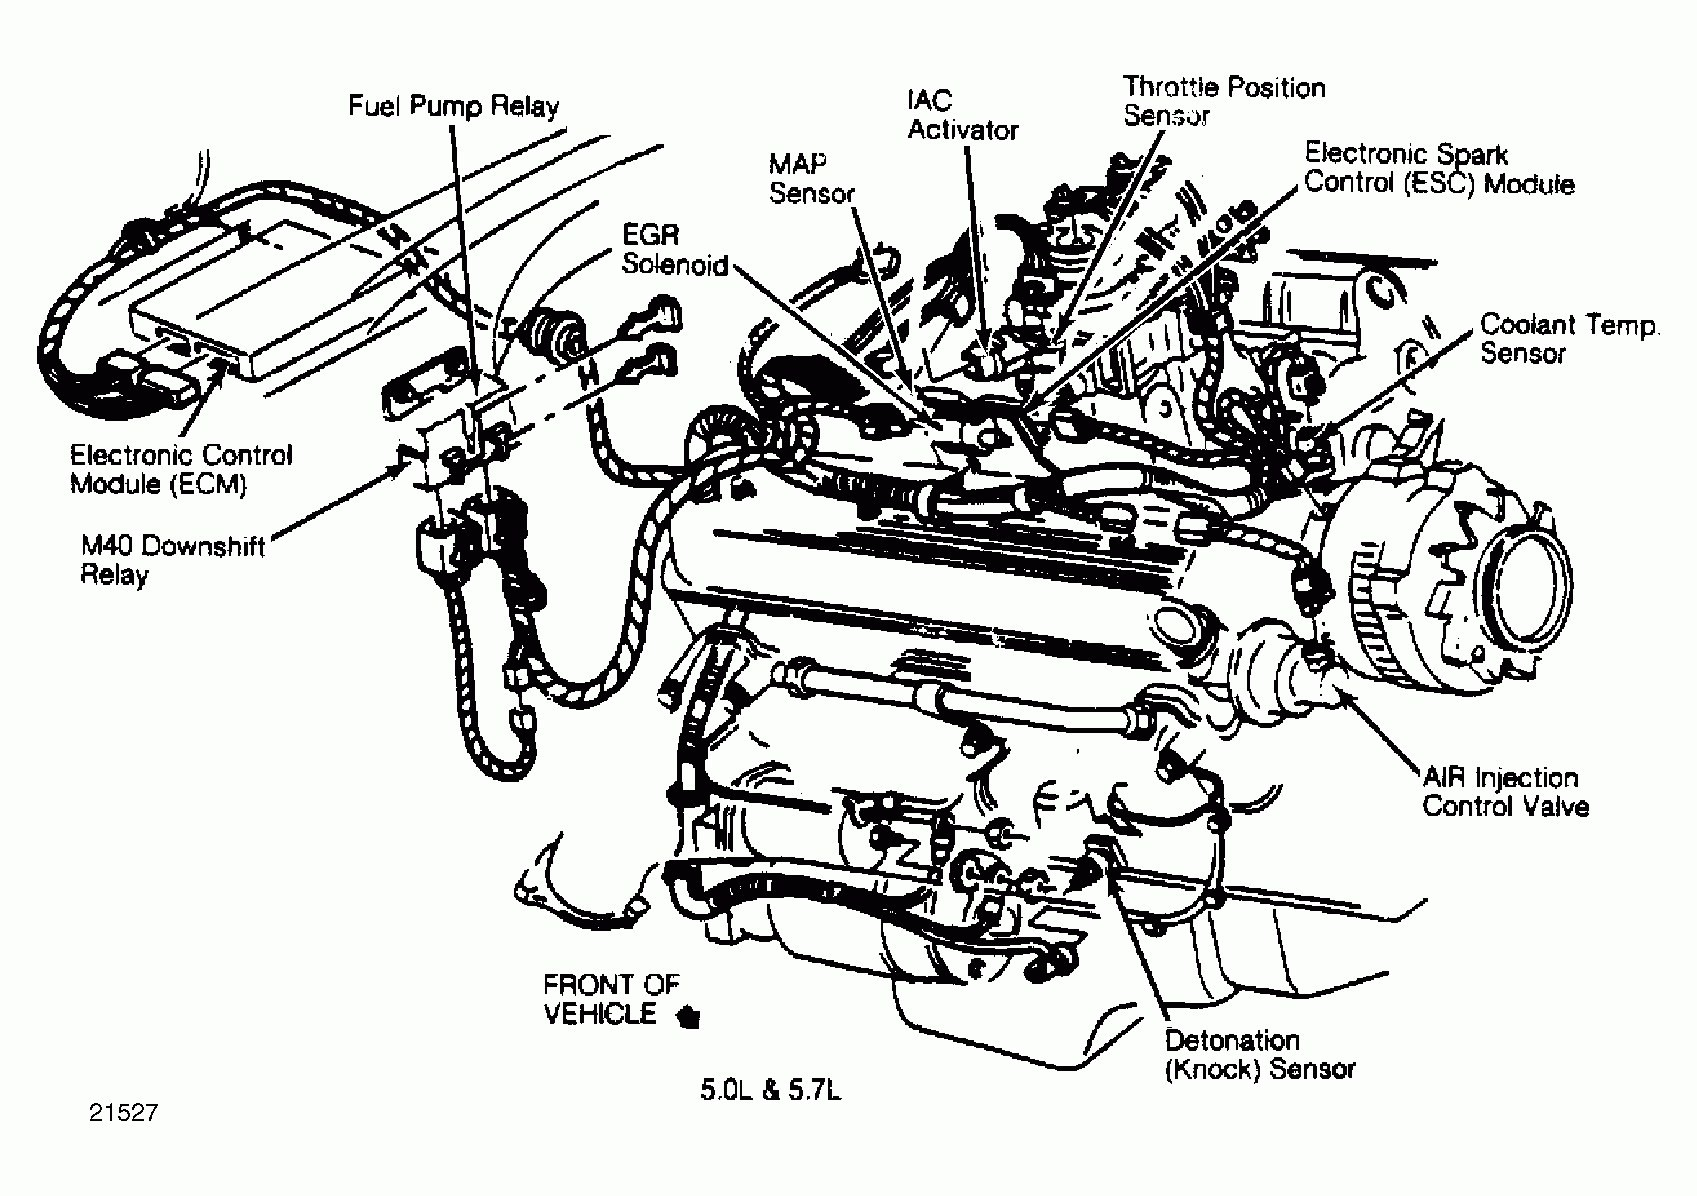 Basic Car Engine Parts Diagram 350 Chevy Engine Parts Diagram Wiring Diagrams Konsult Of Basic Car Engine Parts Diagram